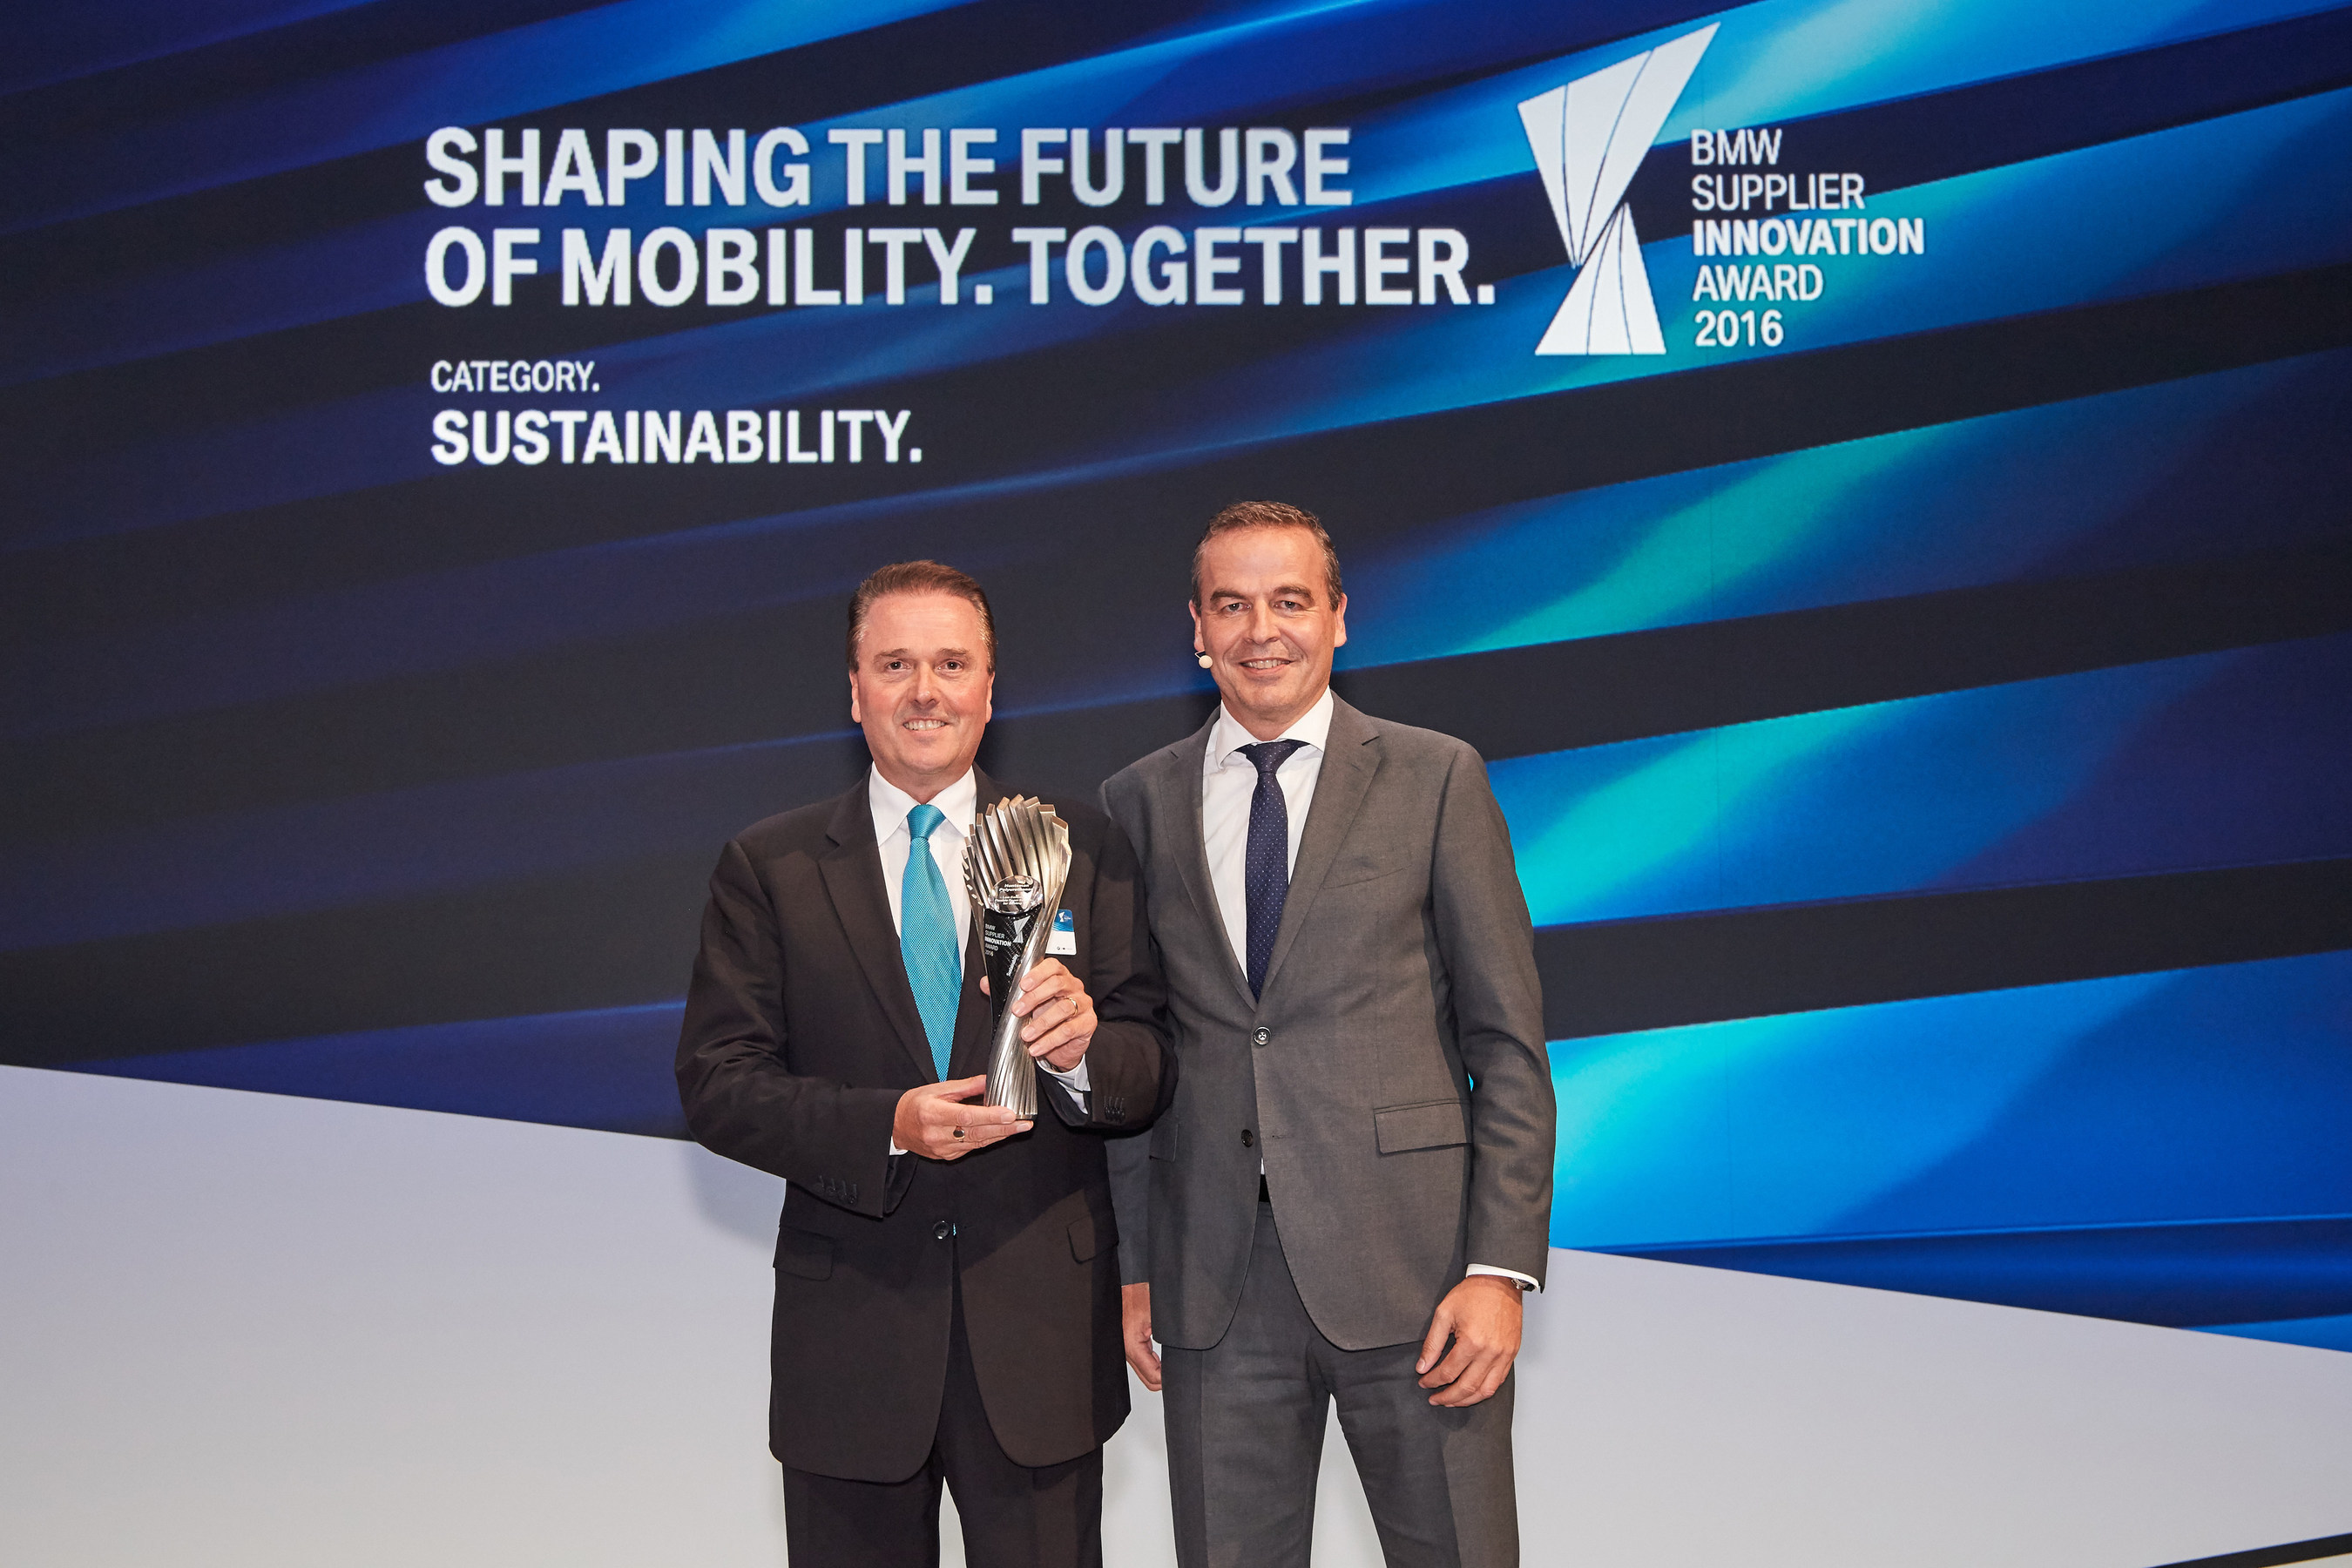 Tony Hankins, President of Huntsman Polyurethanes (left) receives the BMW Supplier Innovation Award for Sustainability (photo: BMW Group)